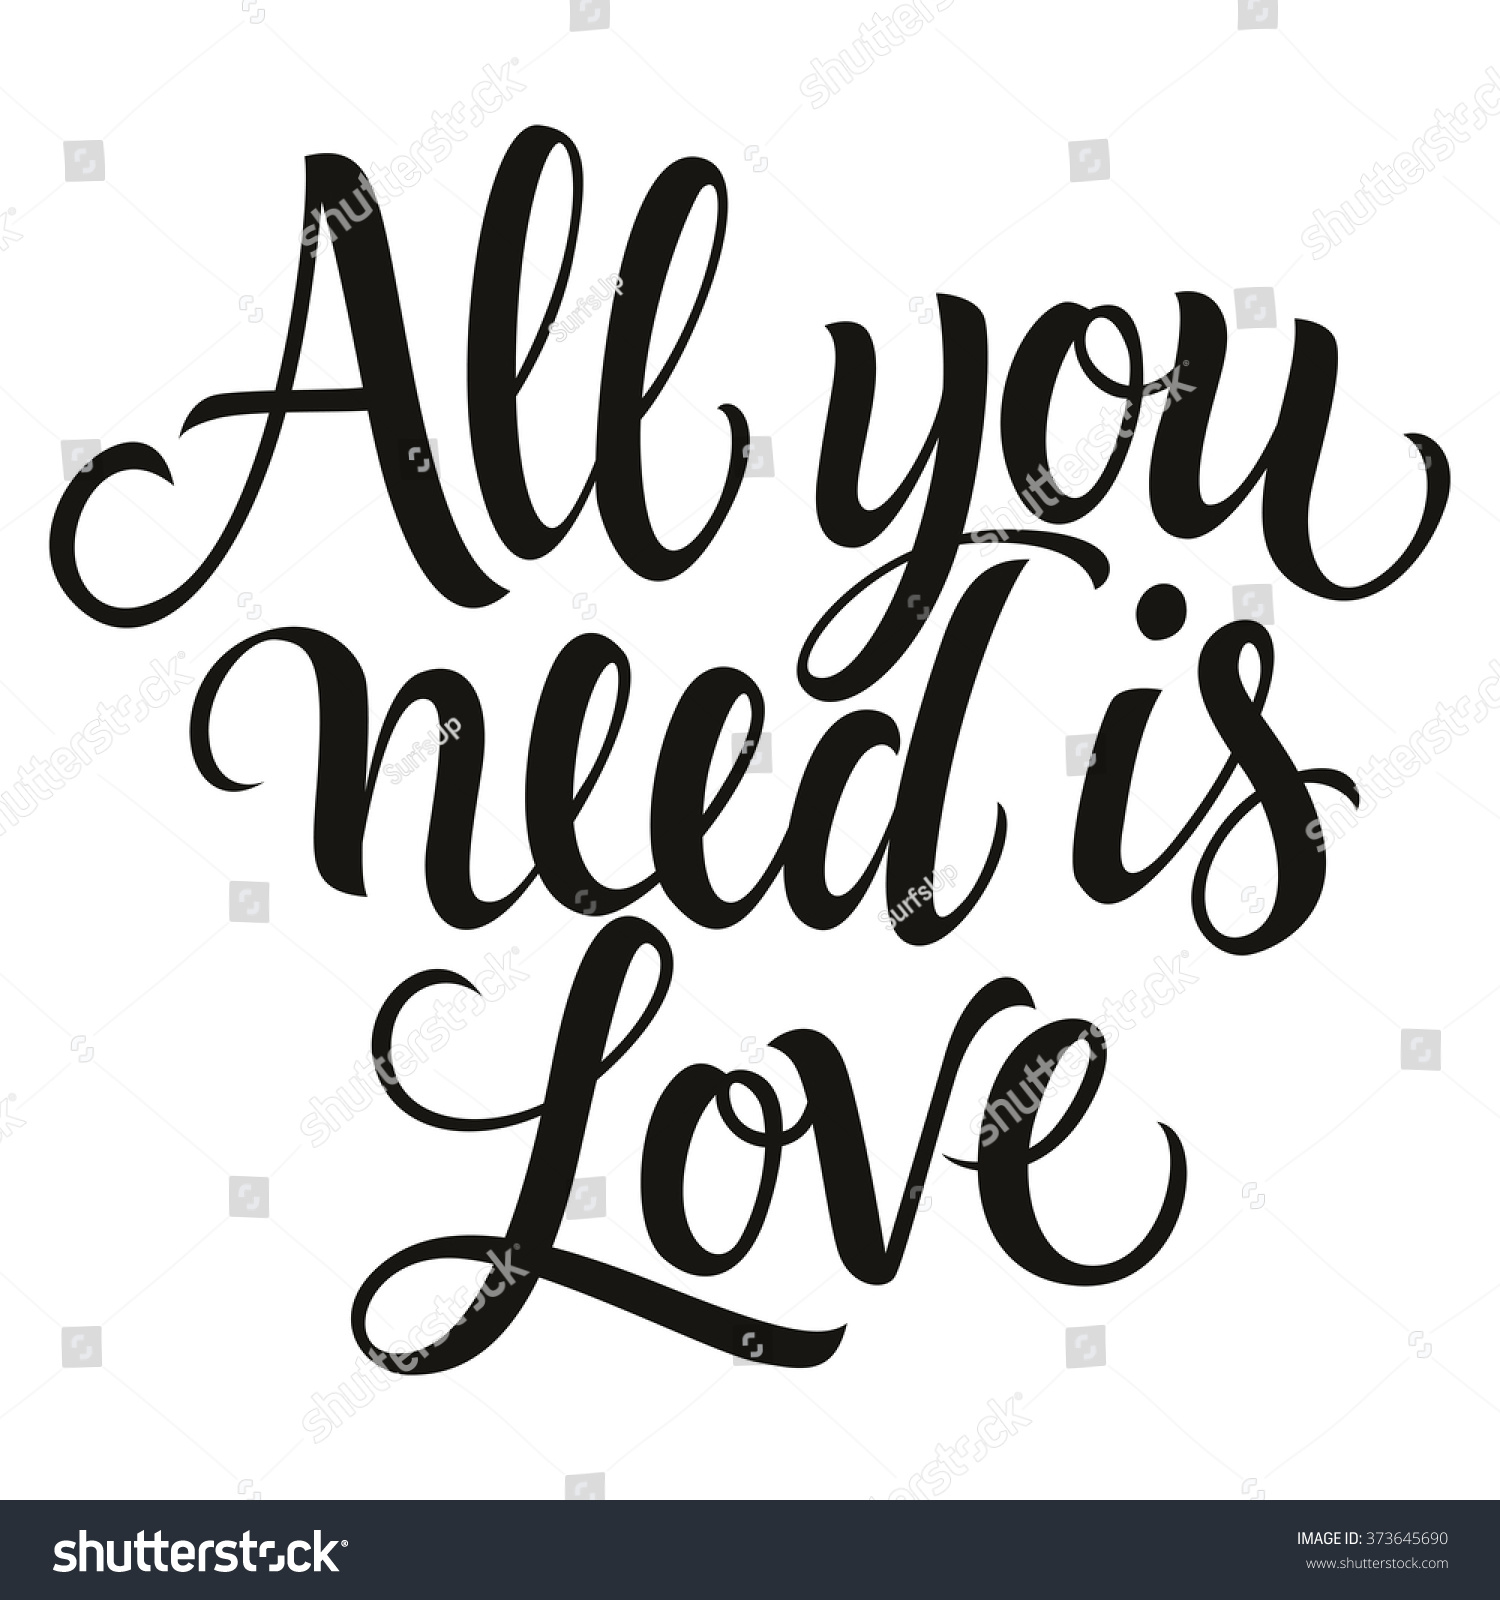 royalty free calligraphic all you need is love 373645690